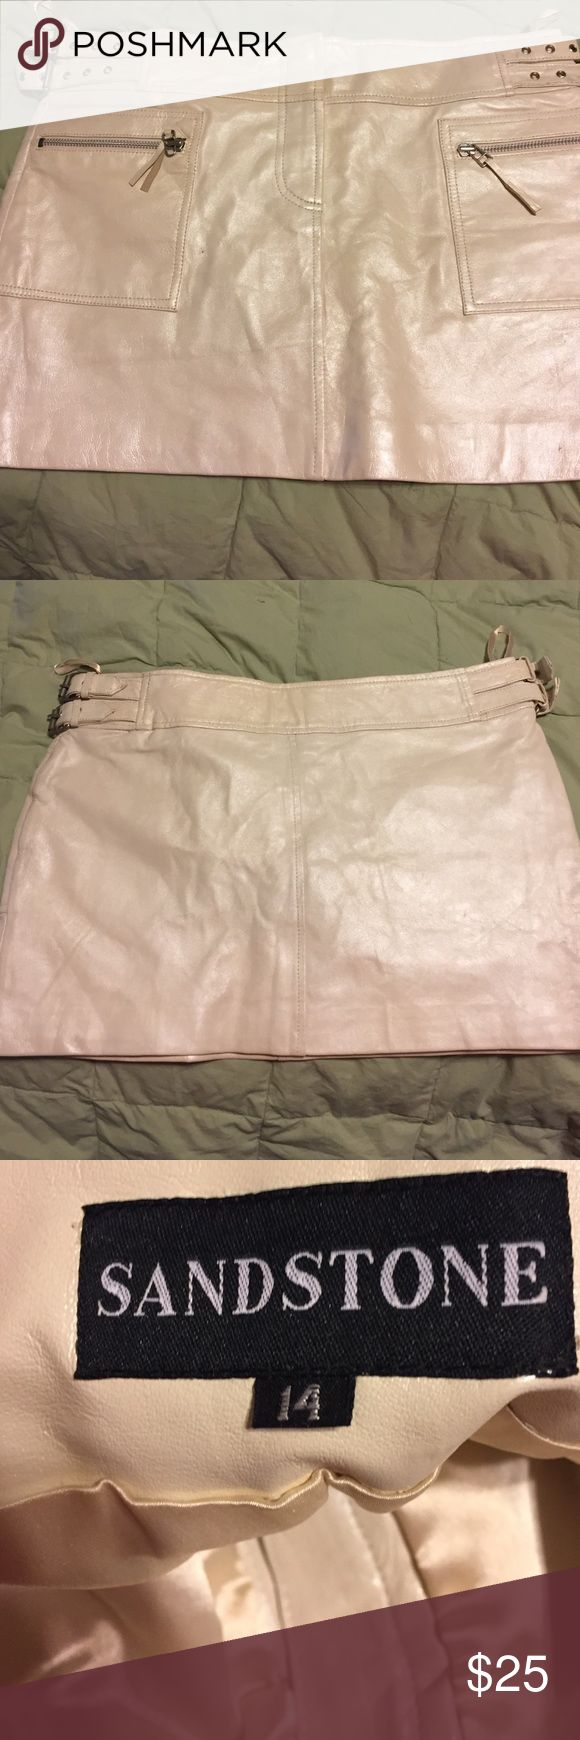 Pearl white leather mini skirt size 14 adjustable Cute mini with front pockets and side buckles on each side to tighten waist it is a size 14 real leather pearl like creamy white color! Small dot on right front by bottom of front right pocket, in last picture never worn! In excellent shape besides dot low price! Thanks for looking at my items! sandstone Skirts Mini